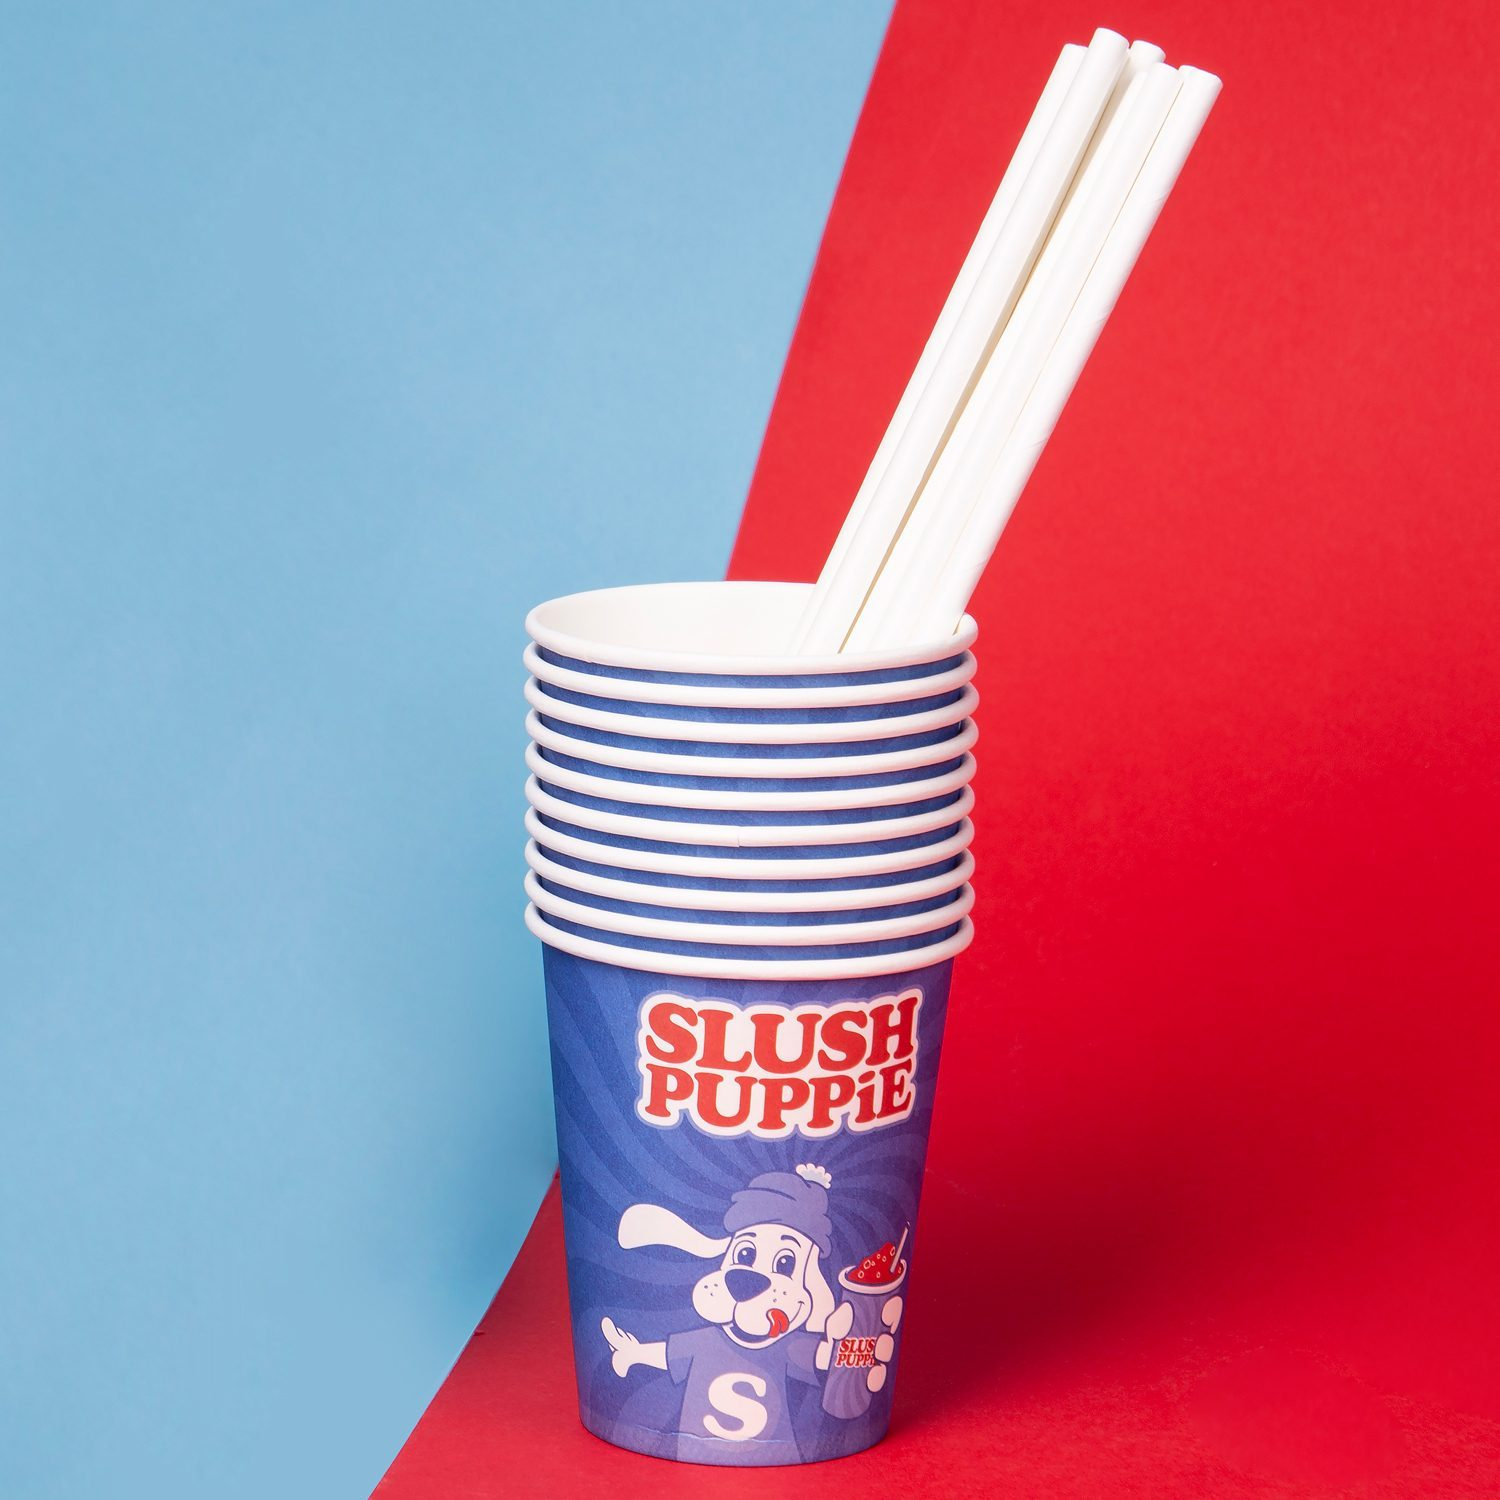 Slush Puppie Bekers en rietjes (set van 20)